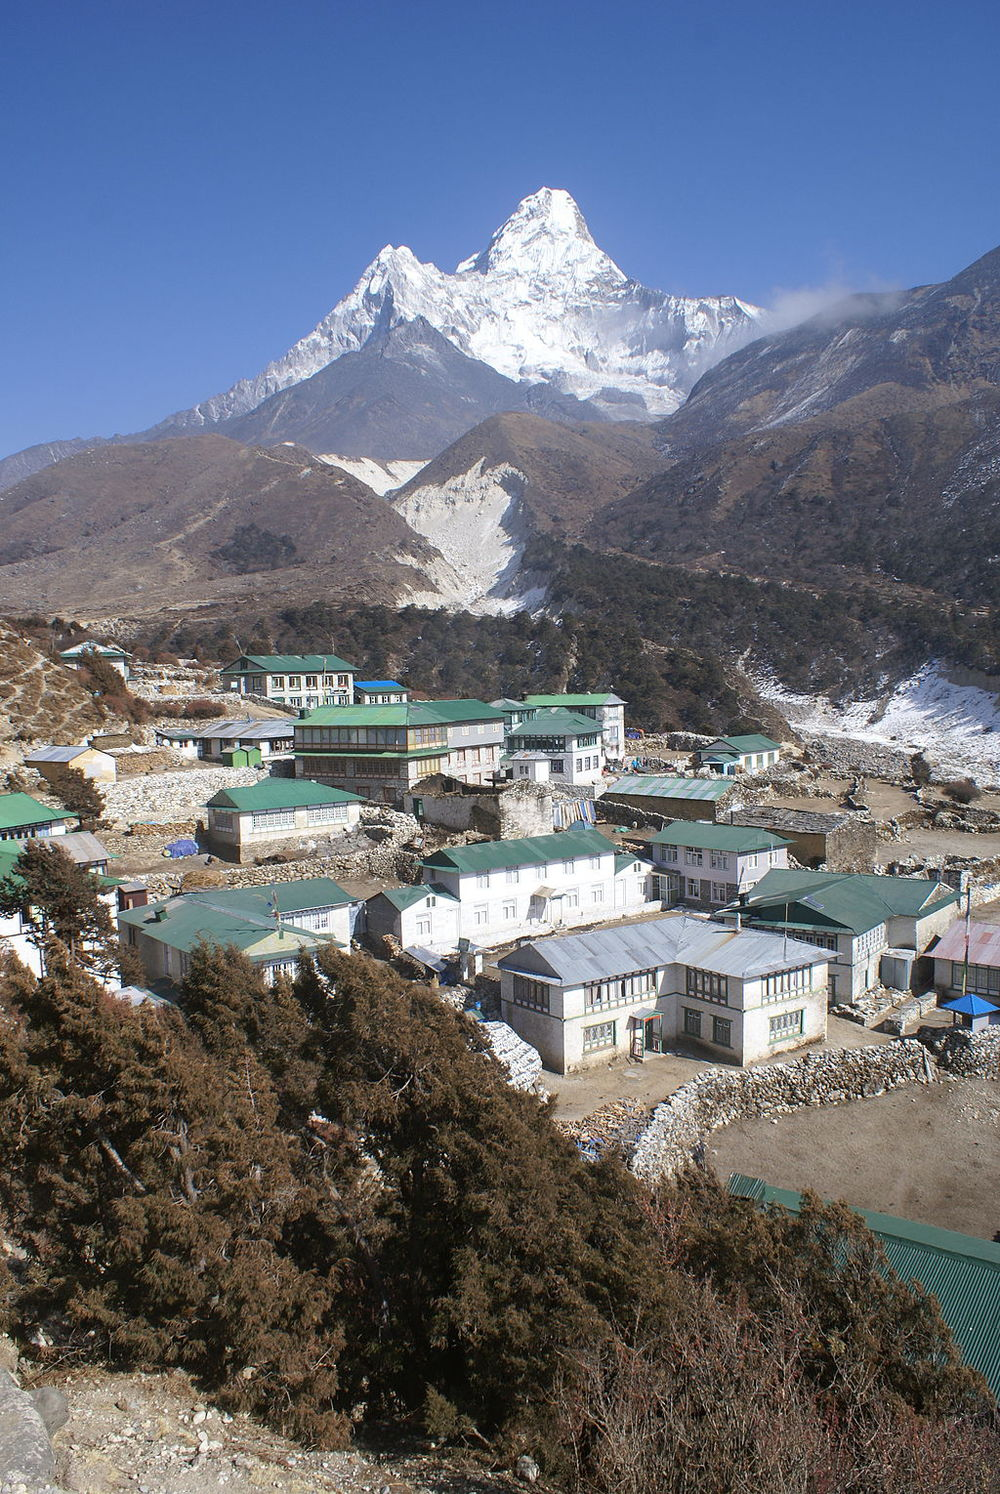 By Moralist (Own work) [CC-BY-SA-3.0 (http://creativecommons.org/licenses/by-sa/3.0)], via Wikimedia Commons. A view of the Pangboche village with Ama Dablam behind.